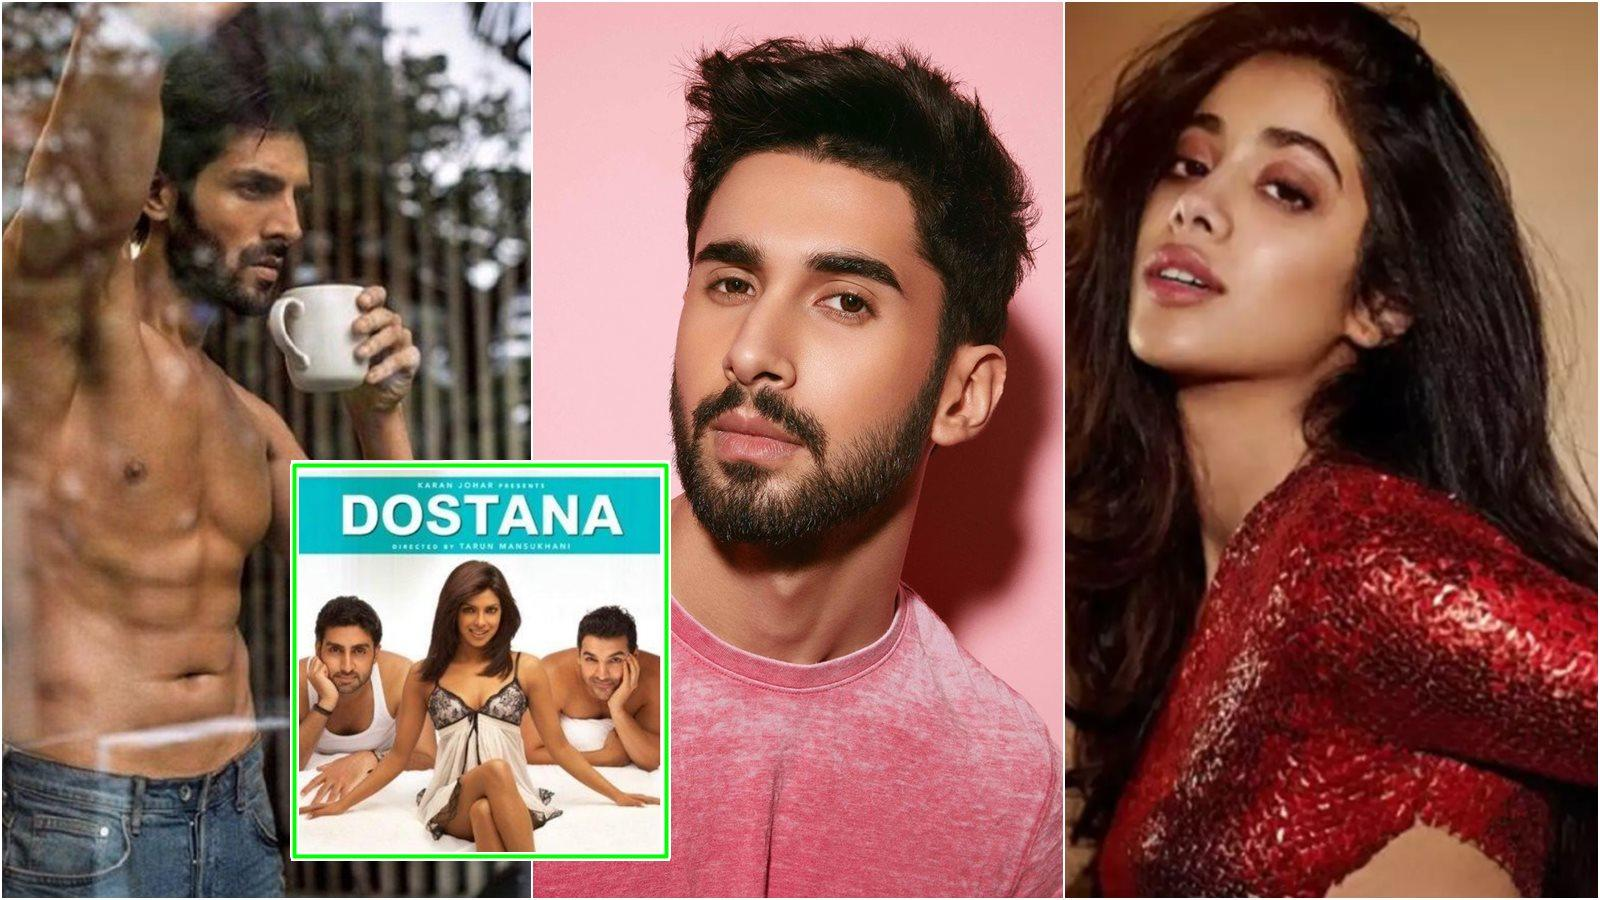 Dostana 2' cast is complete, Karan Johar ropes in Lakshya